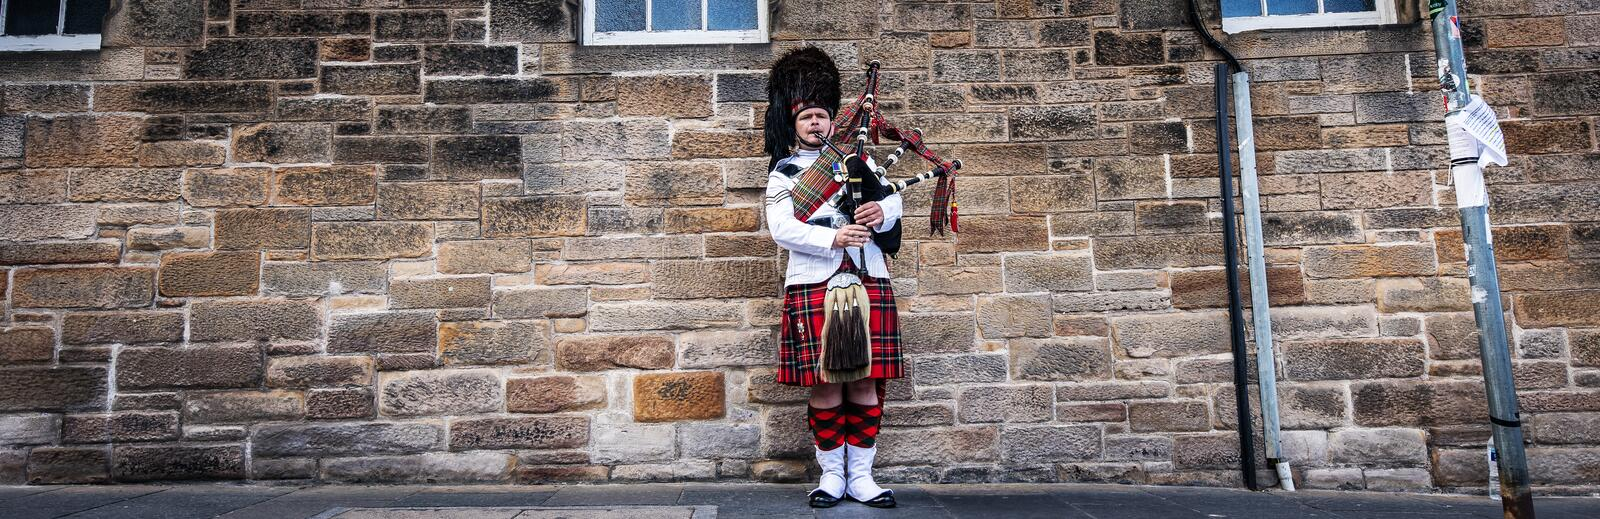 Scottish Piper Dressed In His Kilt Editorial Image - Image ...